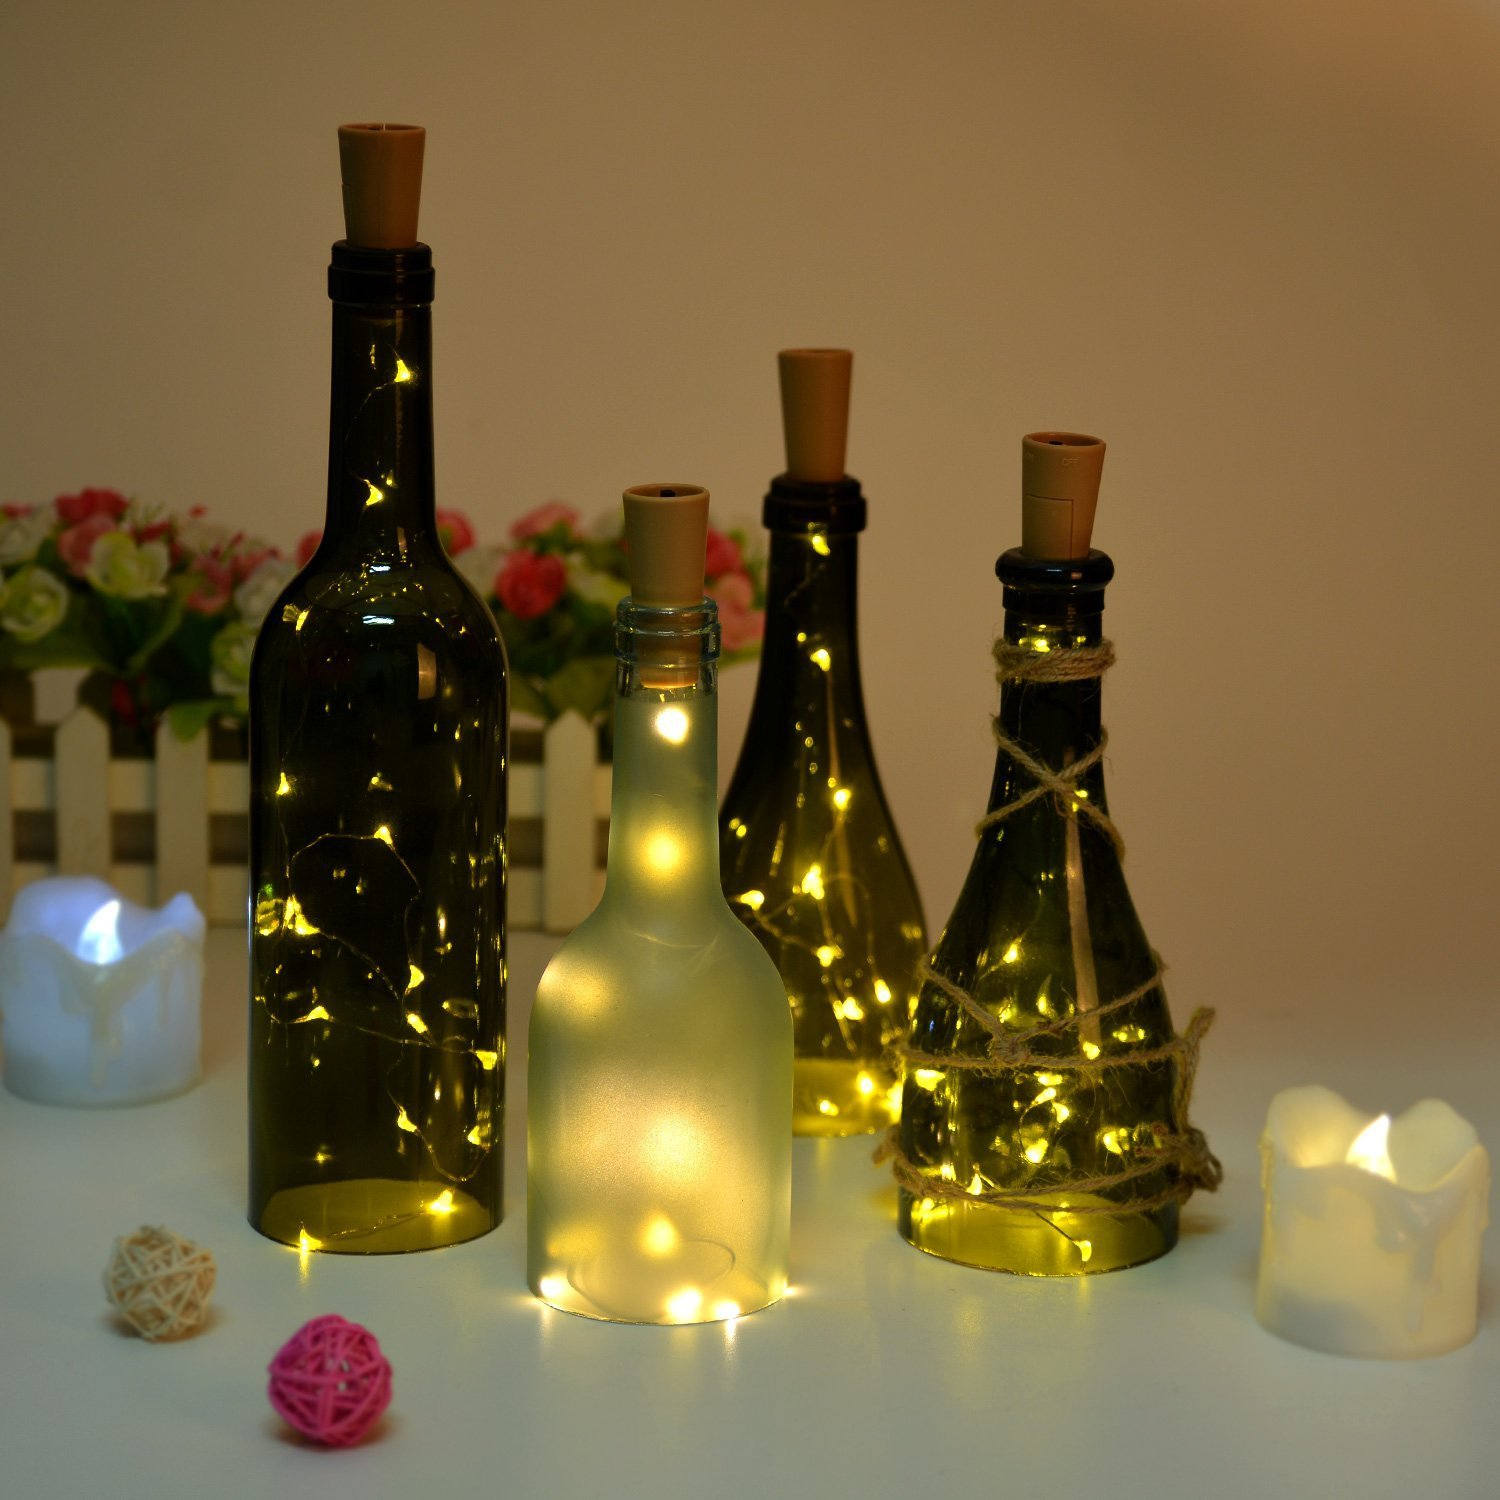 Valentine Gifts - Decorative Bottle Lights